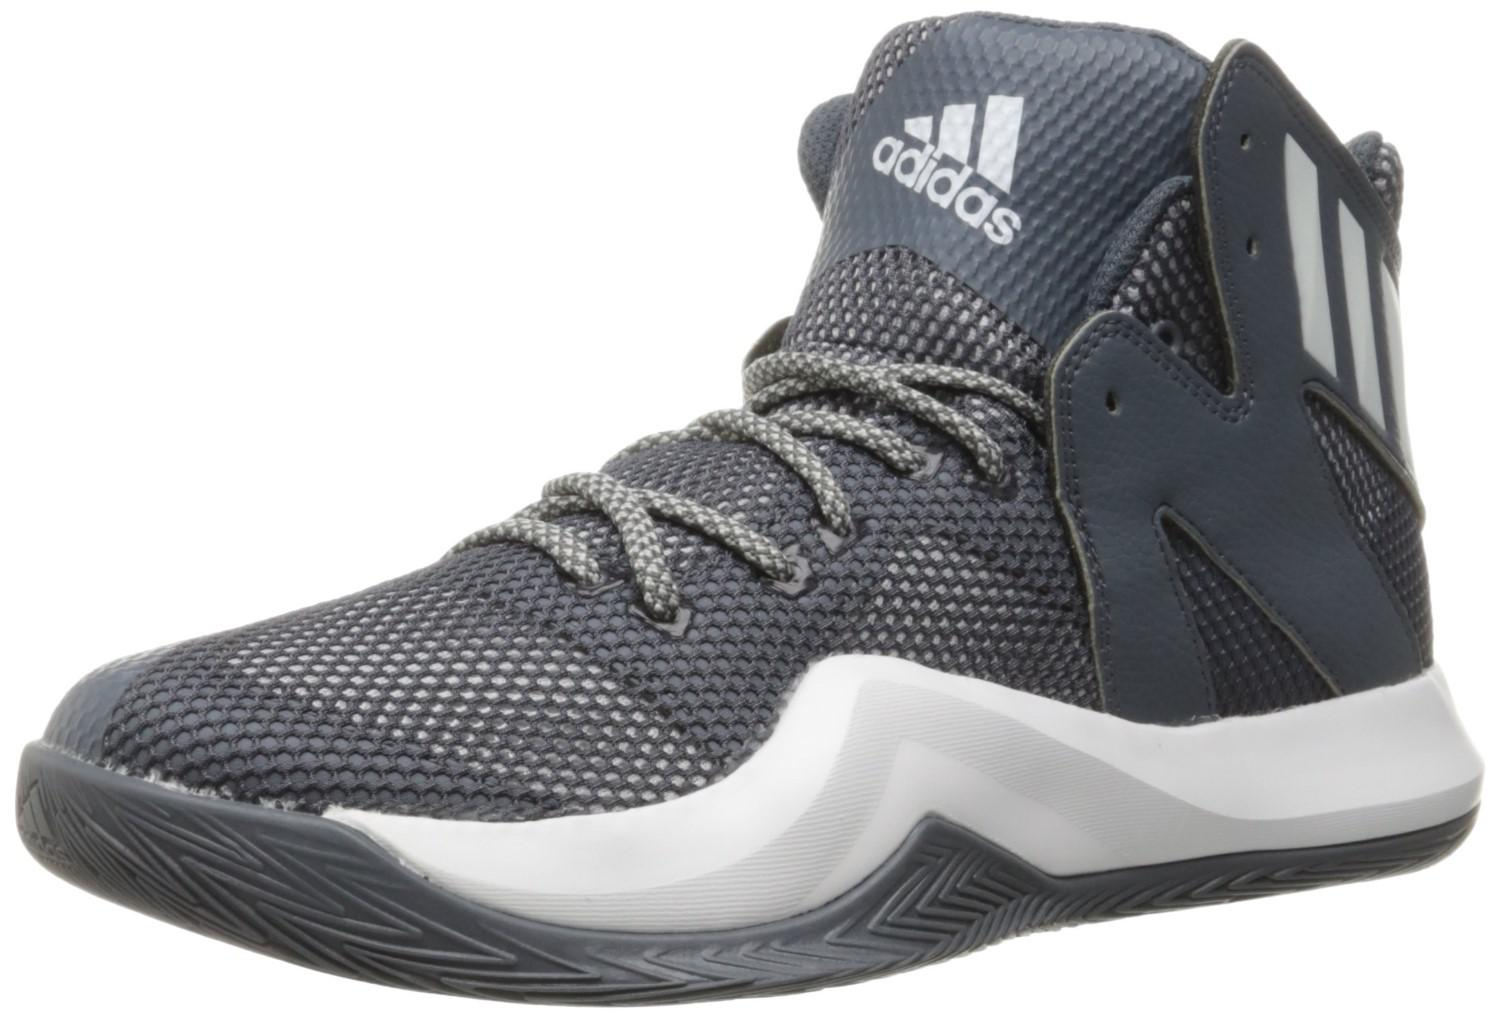 Lyst - Adidas Crazy Bounce Basketball Shoe 11.5 Us in Gray for Men cbbd2d0d7